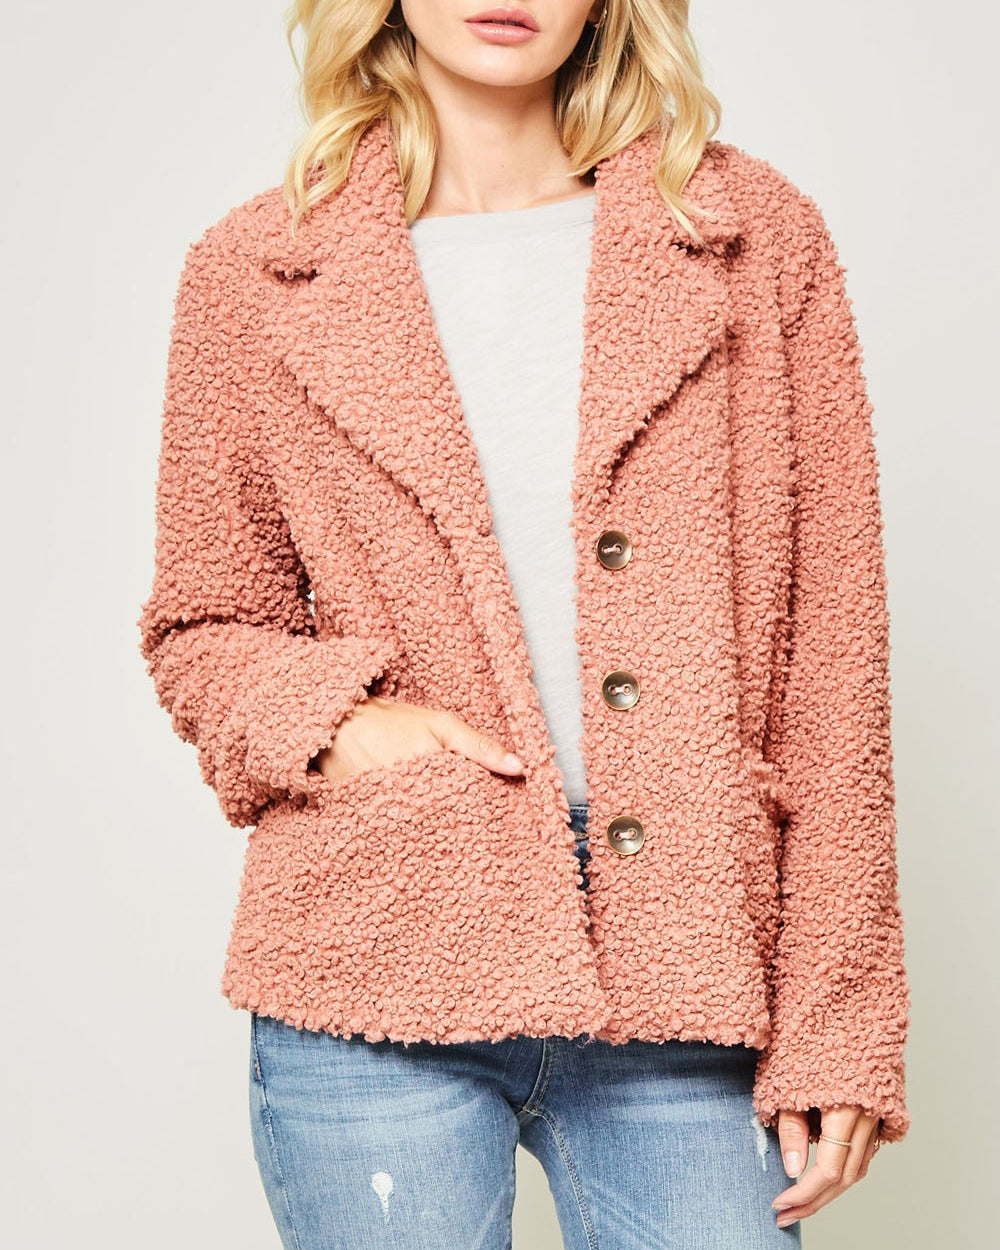 Promesa Peach Pink Persimmon Fluffy Faux Shearling Button Pocket Jacket Coat Savvy Chic Boutique Cleveland Ohio